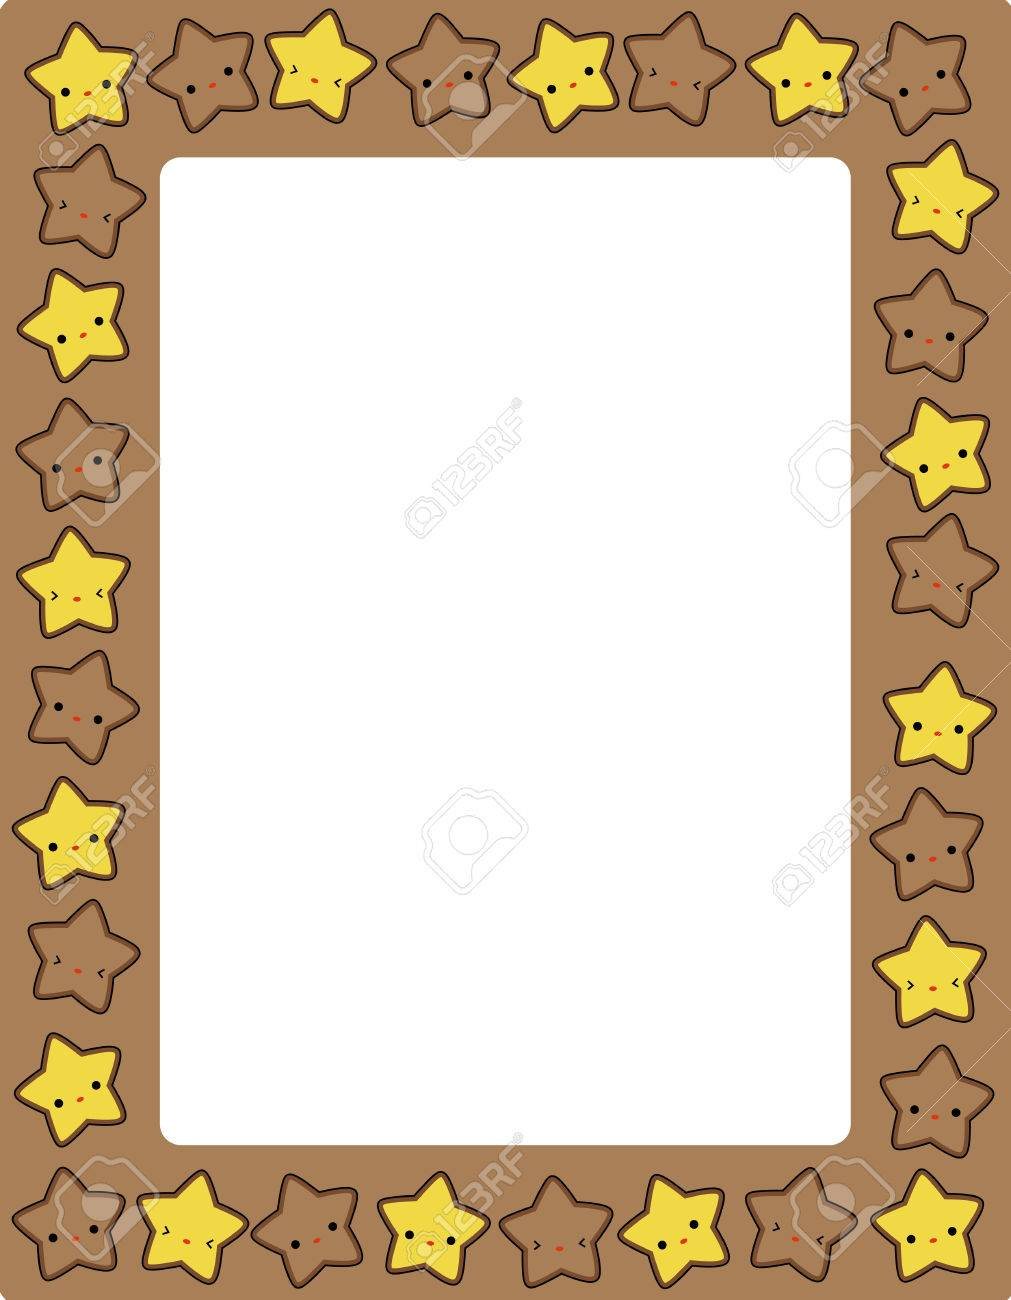 Cute colorful stars border frame for greeting cards party cute colorful stars border frame for greeting cards party invitation backgrounds etc stock vector kristyandbryce Choice Image